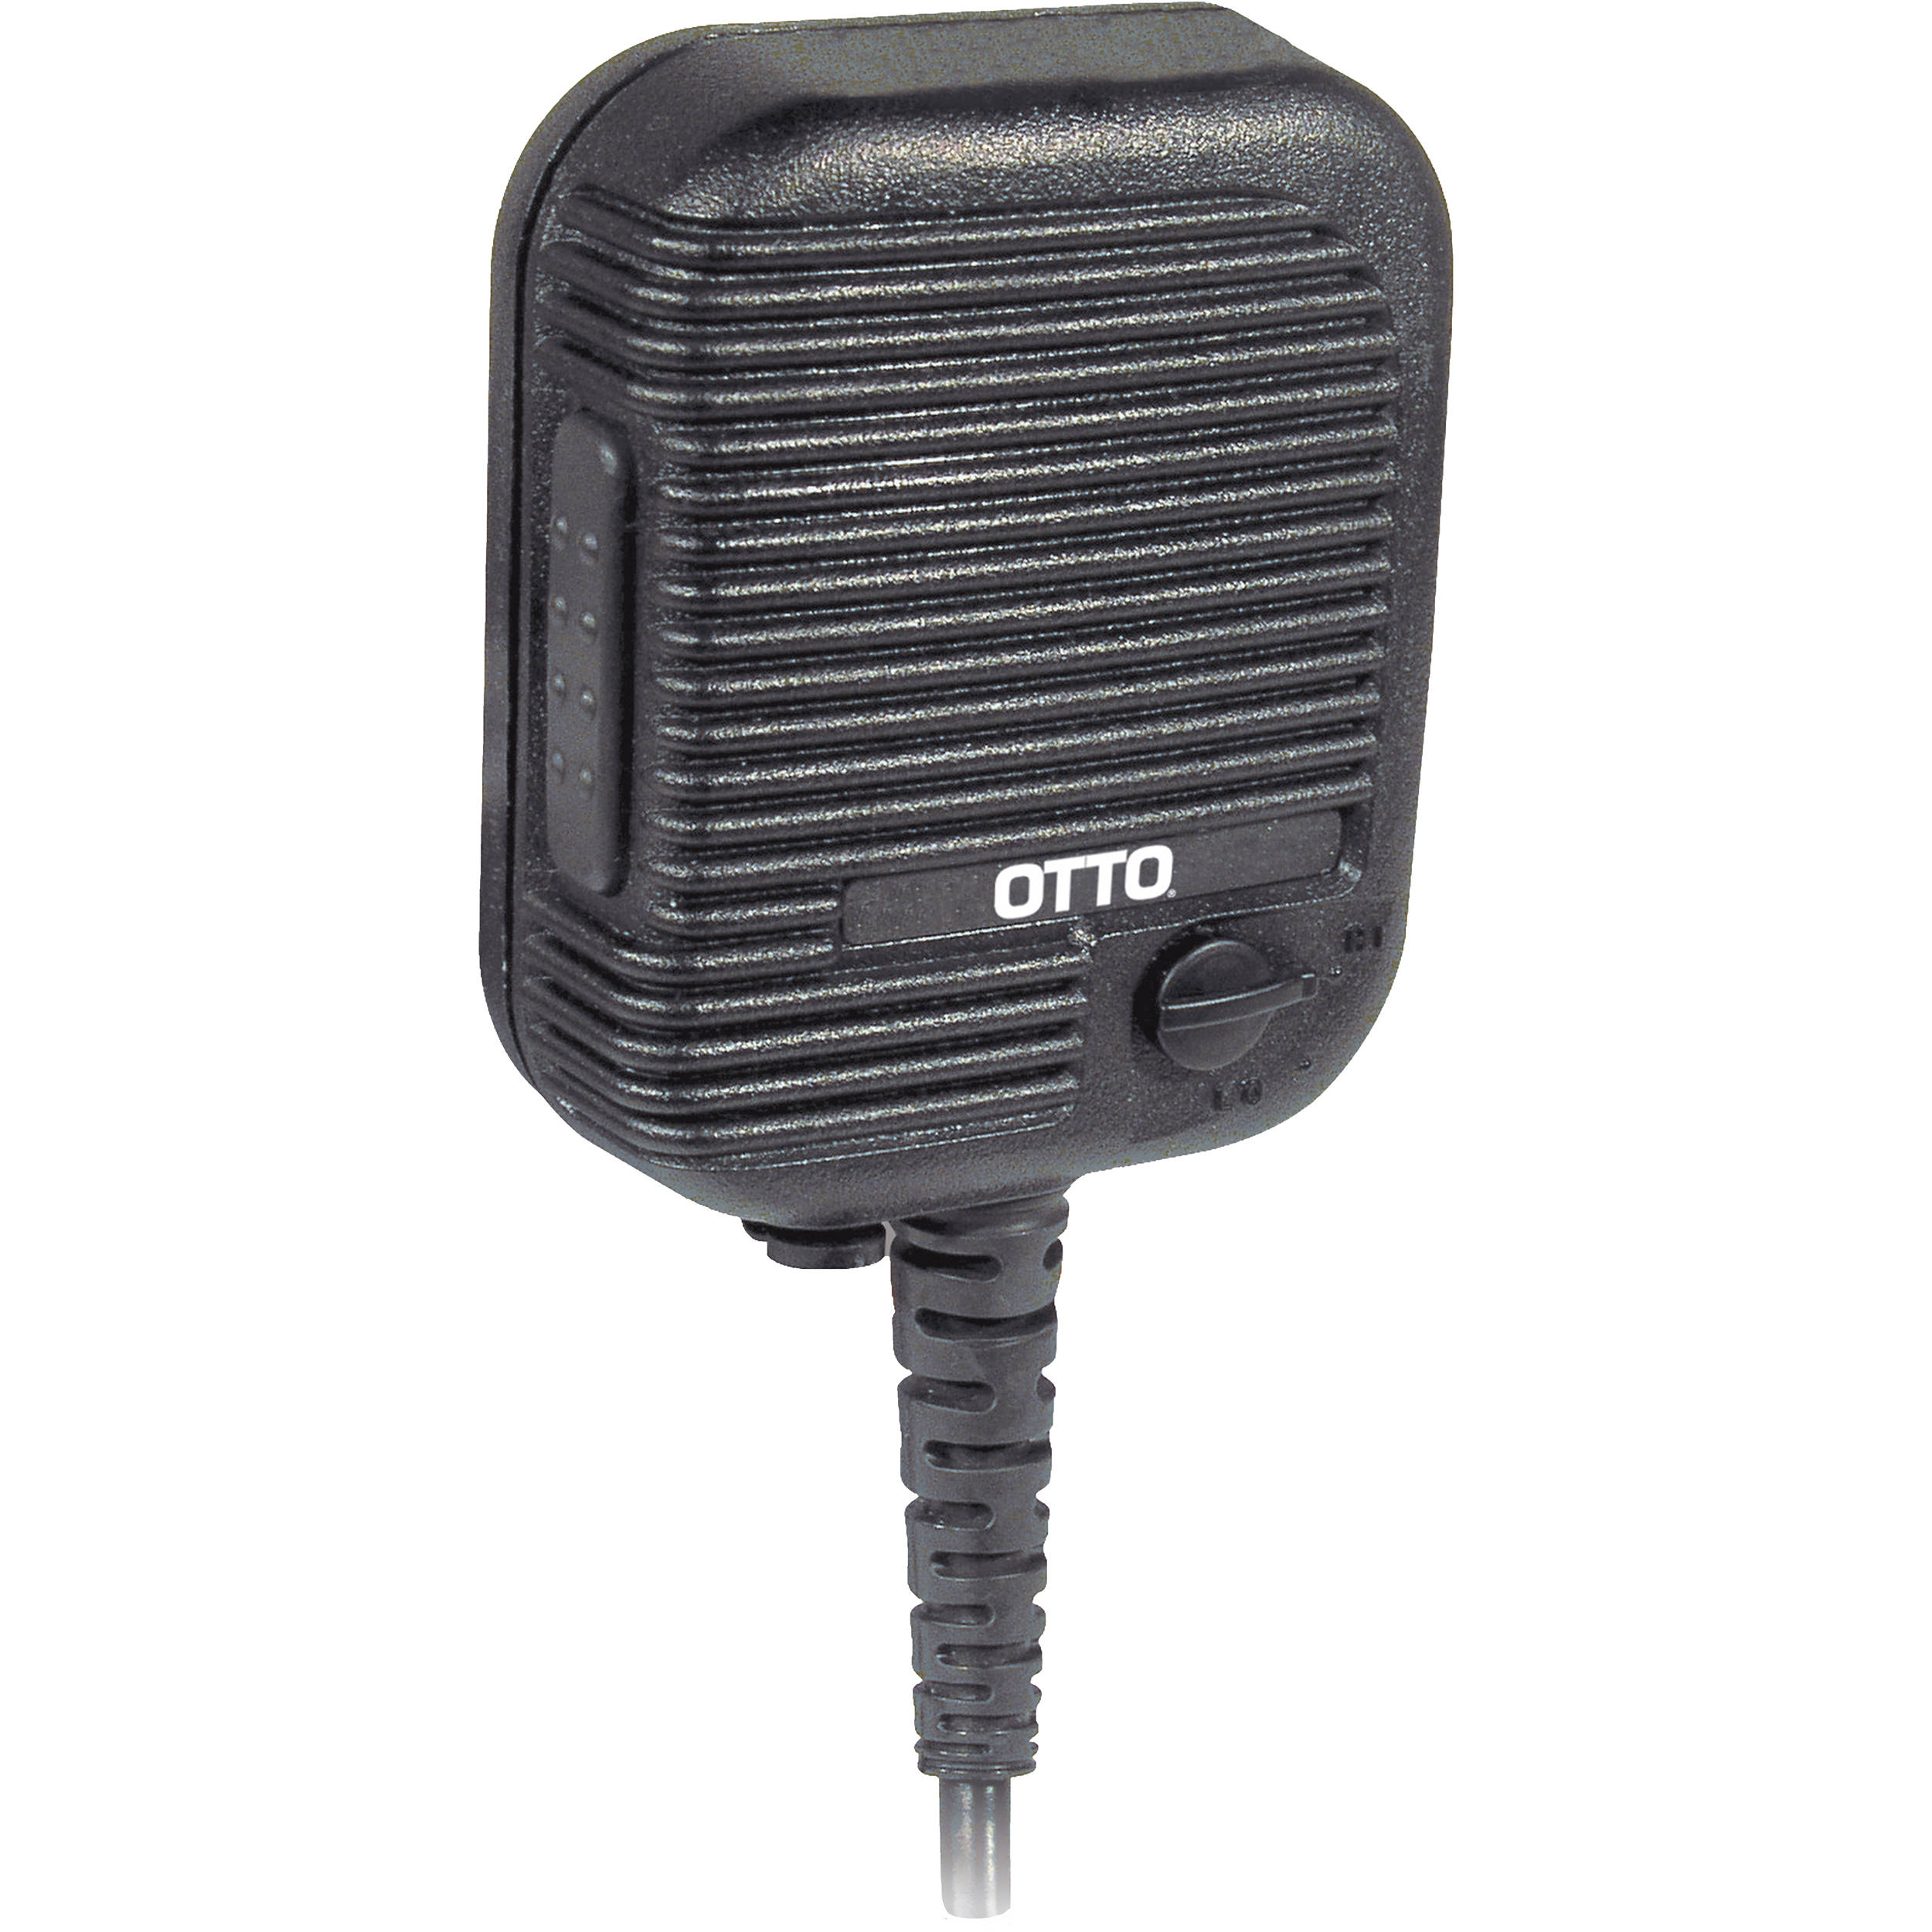 Https C Product 1330412 Reg 2ft Cat5e Utp Ethernet Patch Cable 350mhz Whi Tektel Otto Engineering V2 10026 Evolution Speaker Mic With 1390467